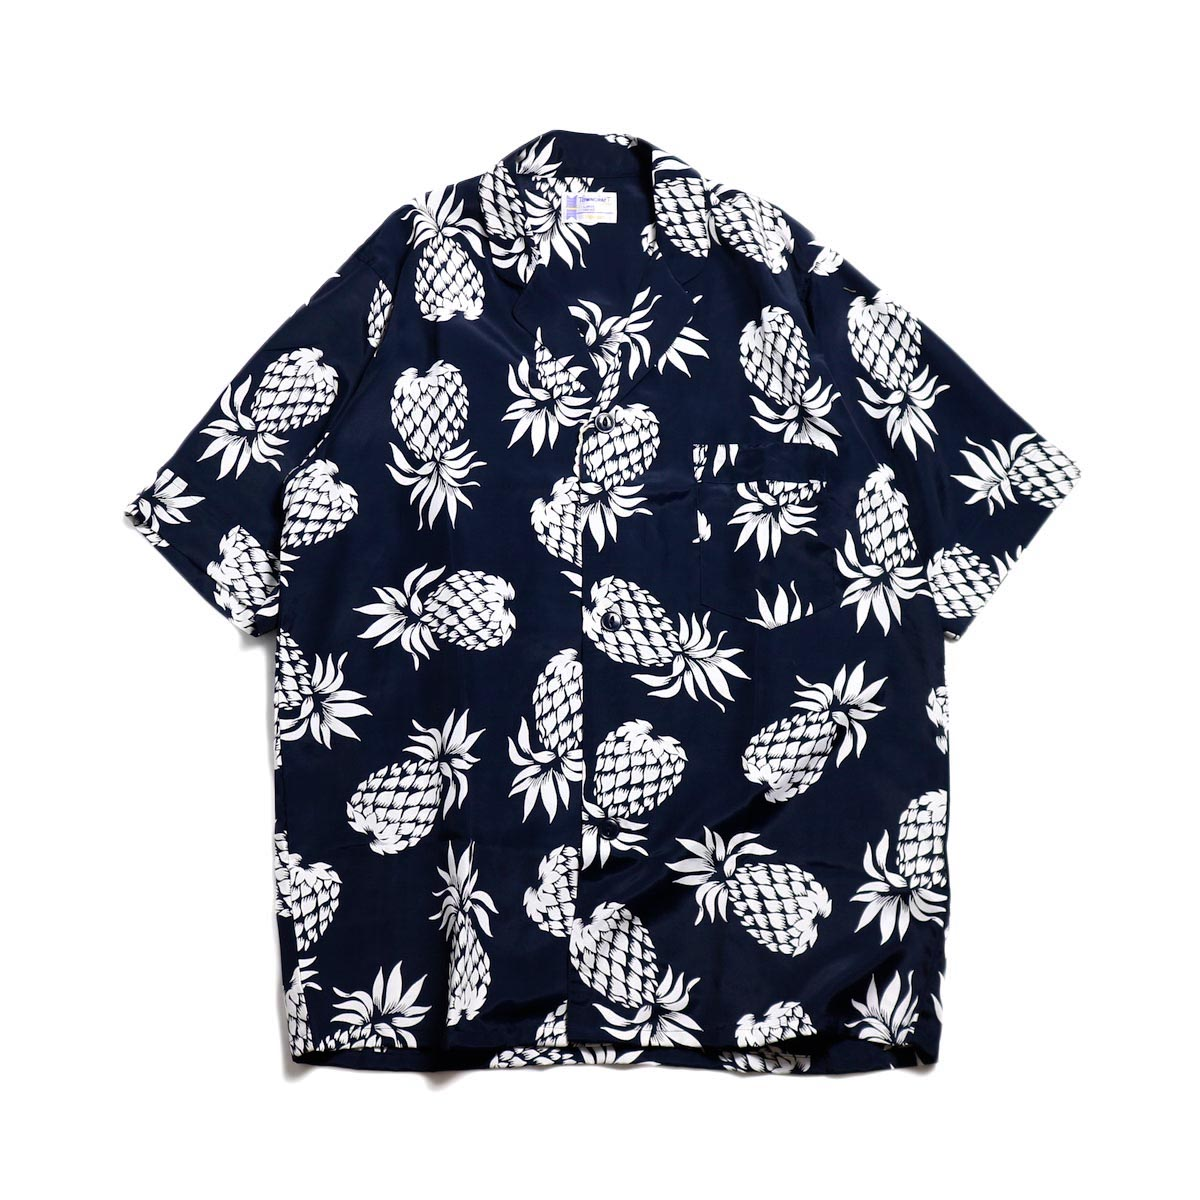 TOWN CRAFT / Rayon Printed Pajama Shirt -Navy